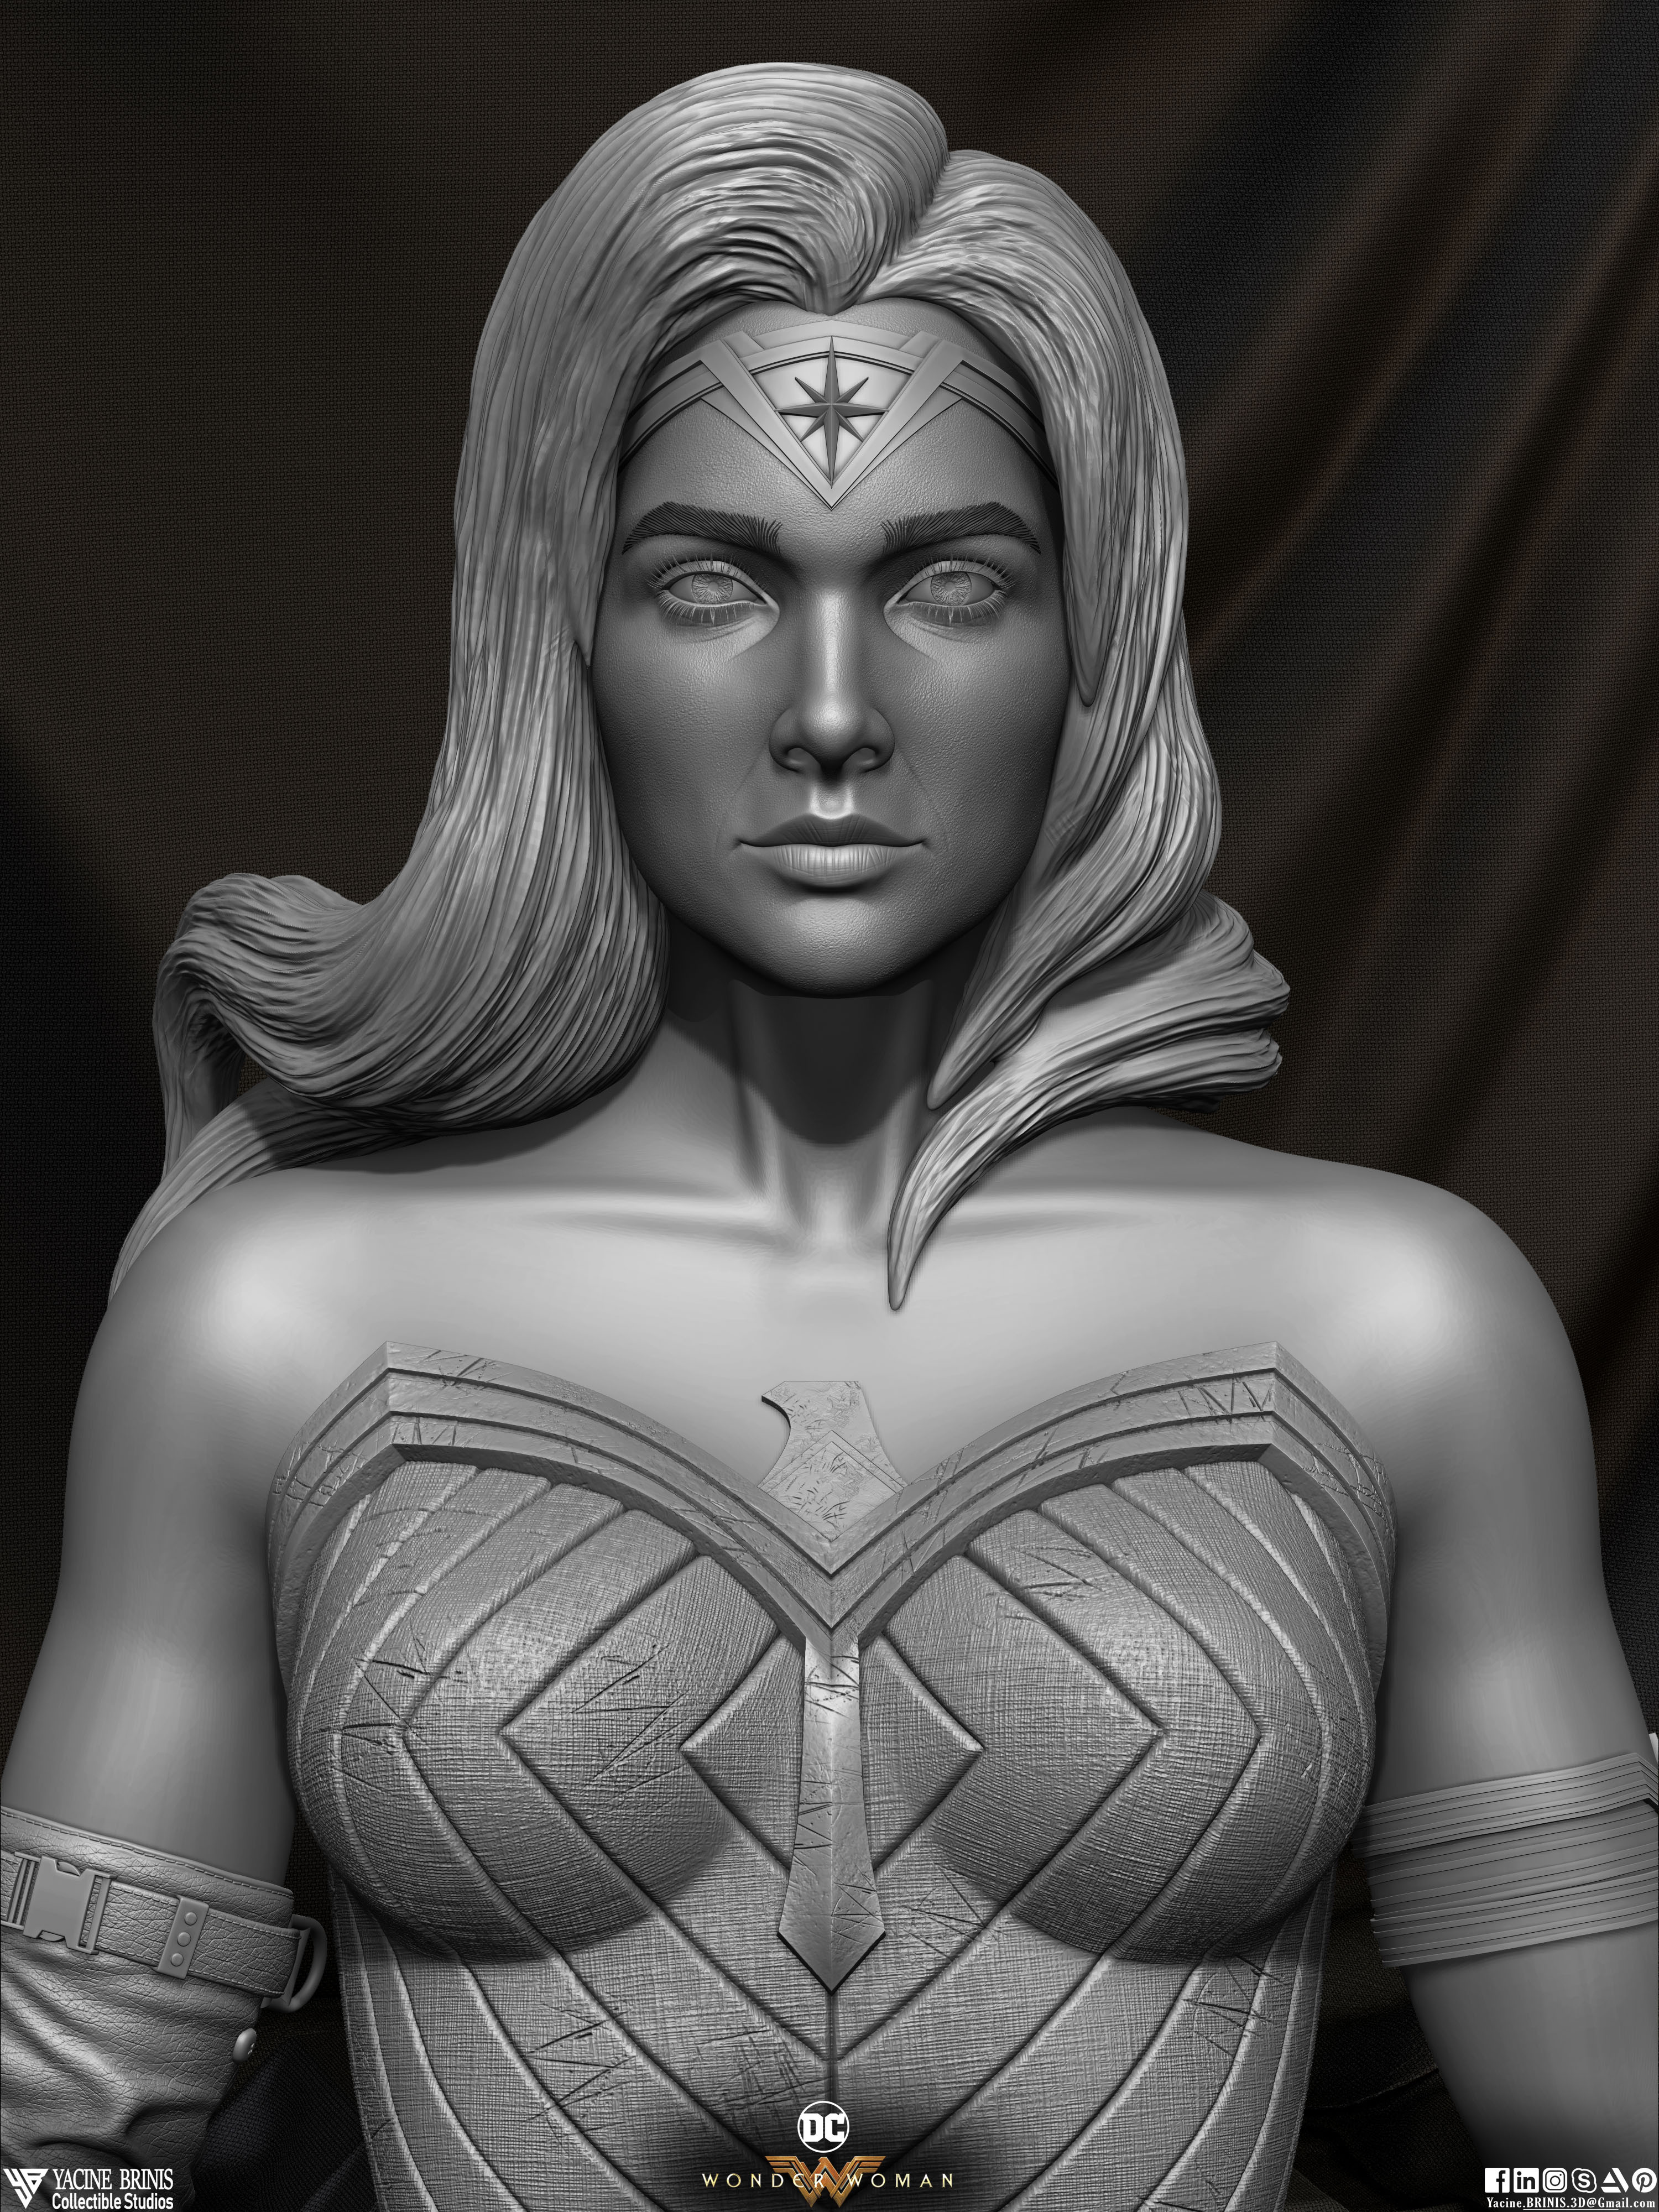 Wonder Woman ZBrush Version, Personal Project (Sculpted By Yacine BRINIS) Set 05